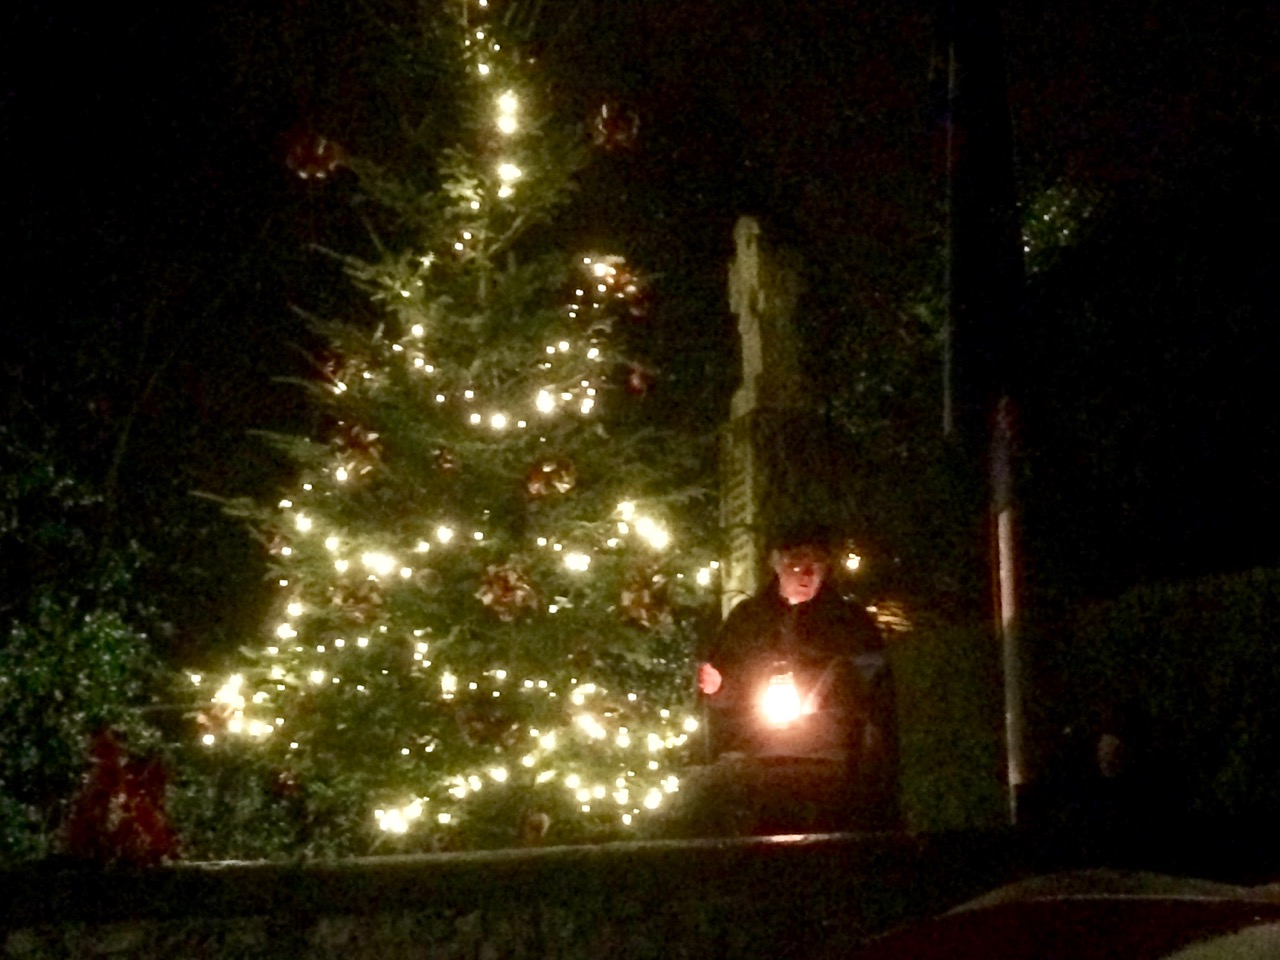 Christmas Spirit Shines Through Weather | Burghwallis Parish Council